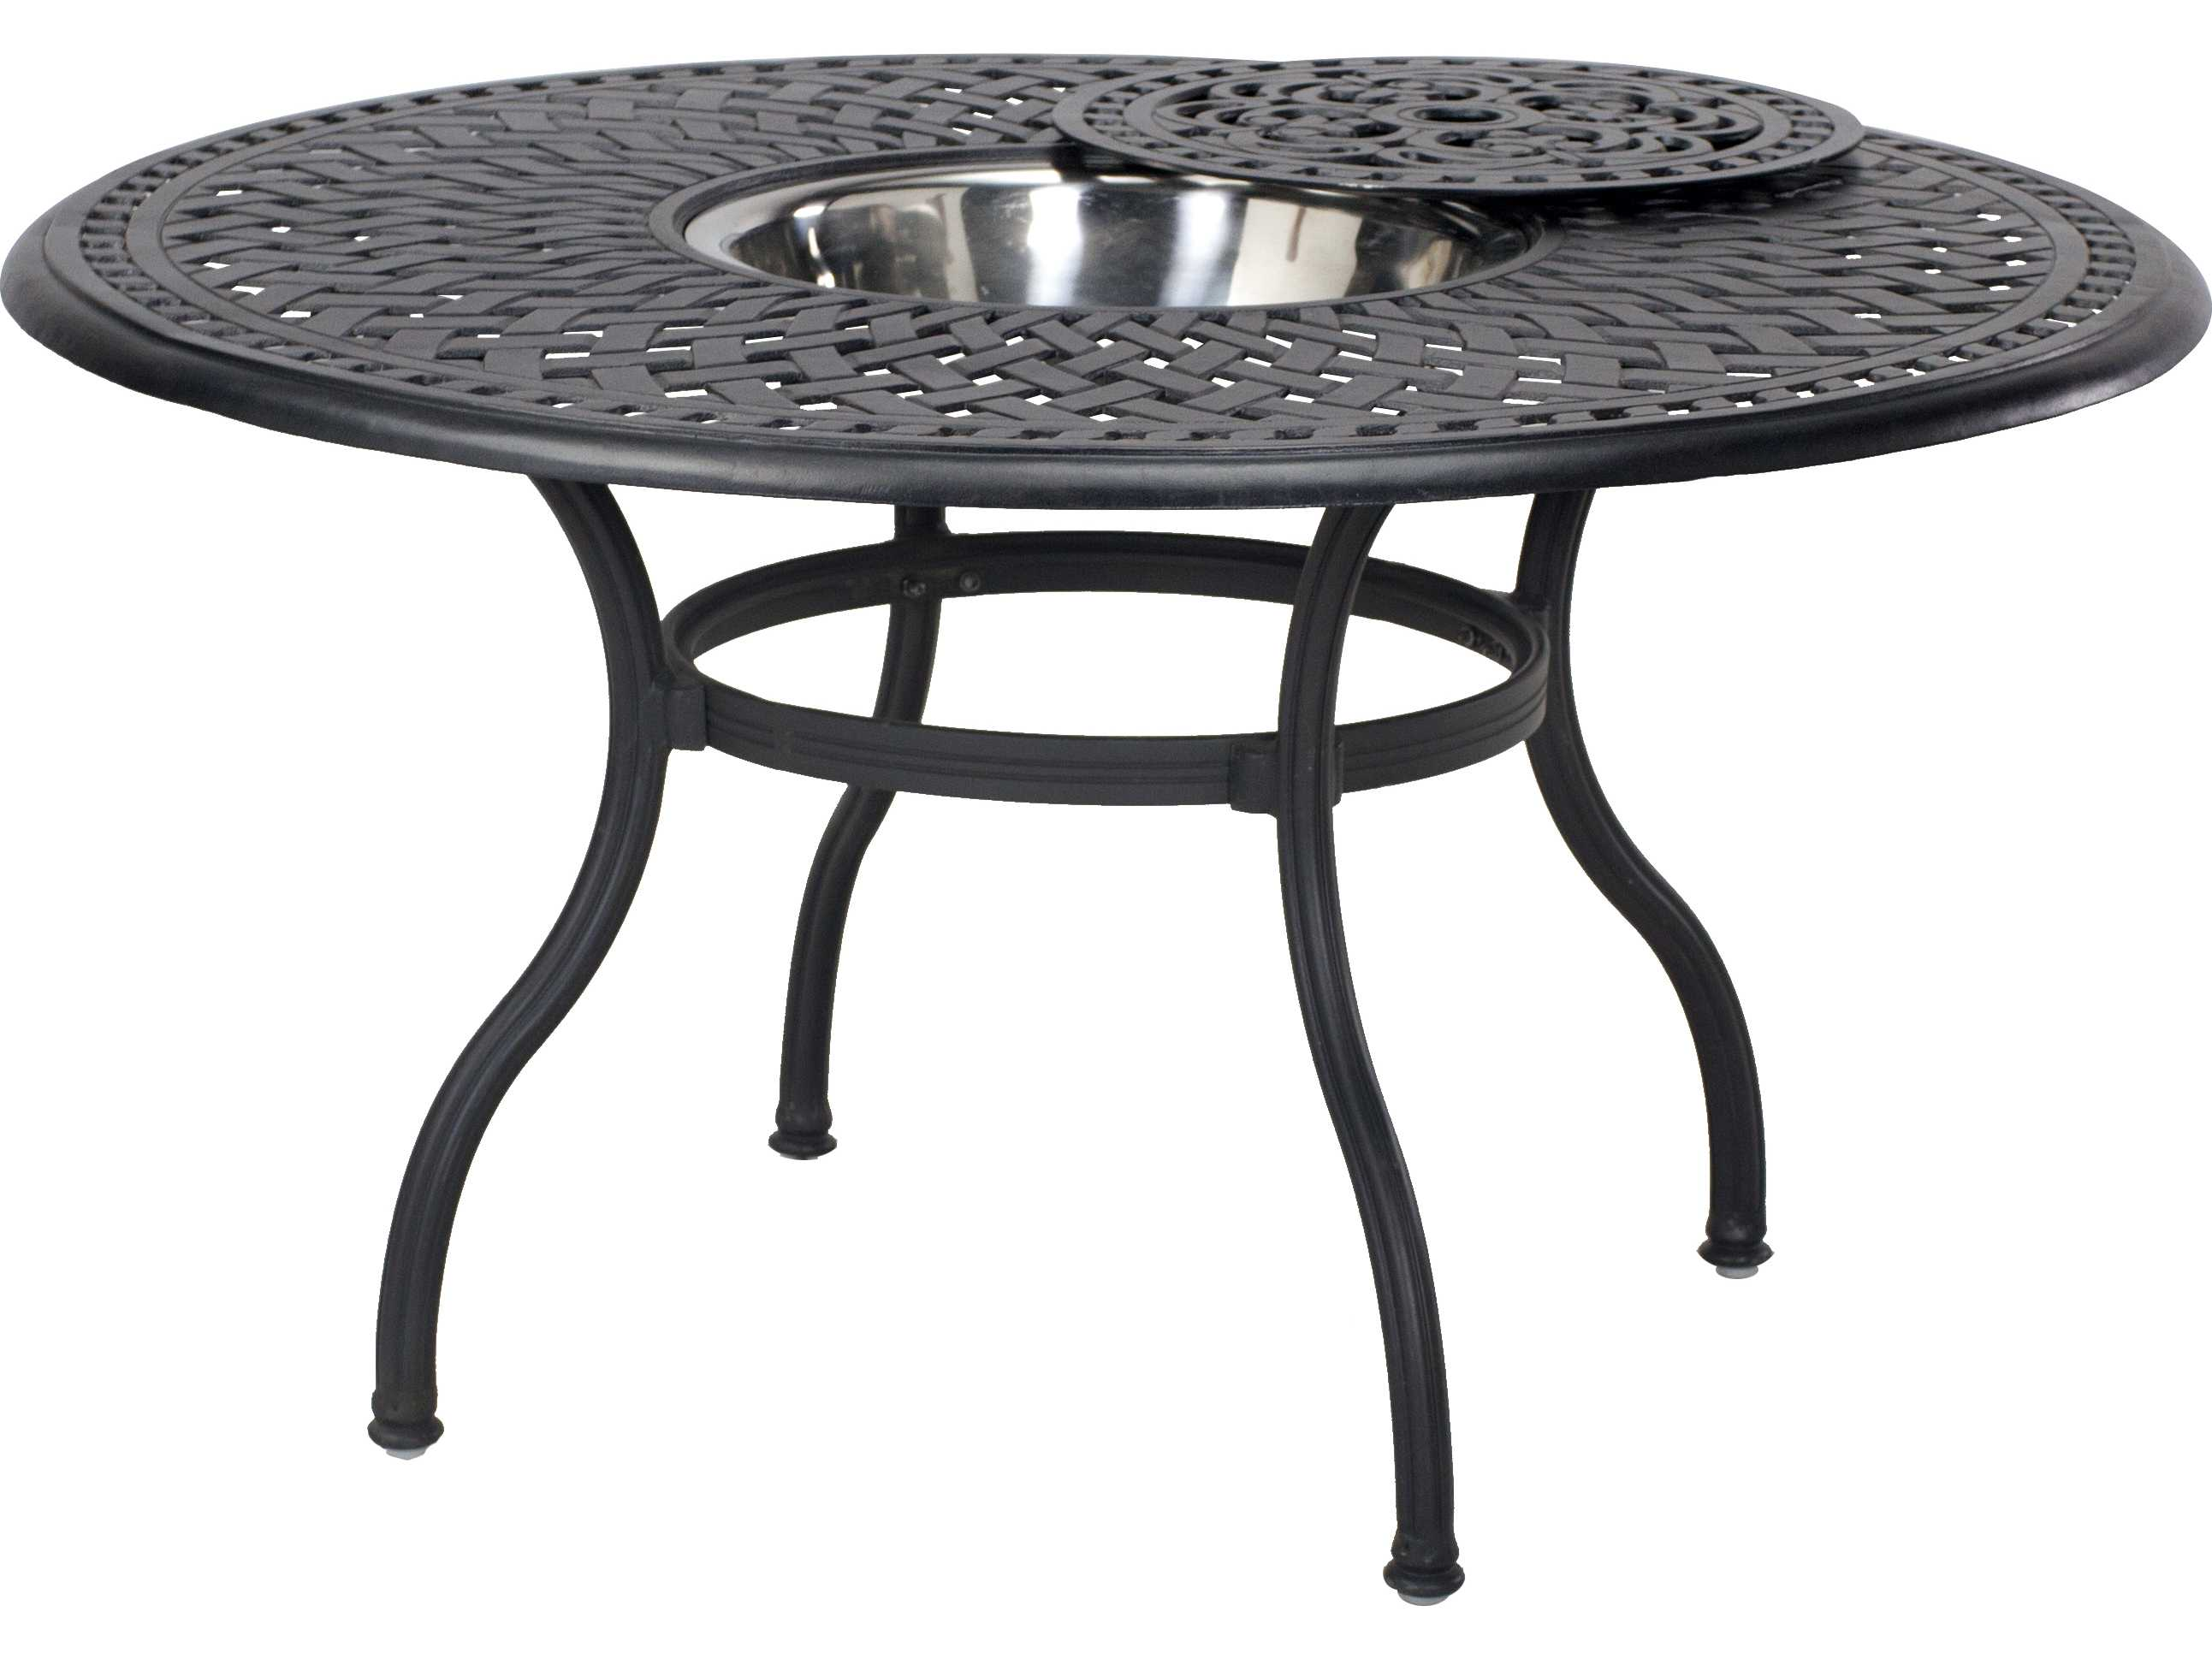 Darlee outdoor living standard capri cast aluminum 5 for Round dining table 52 inch